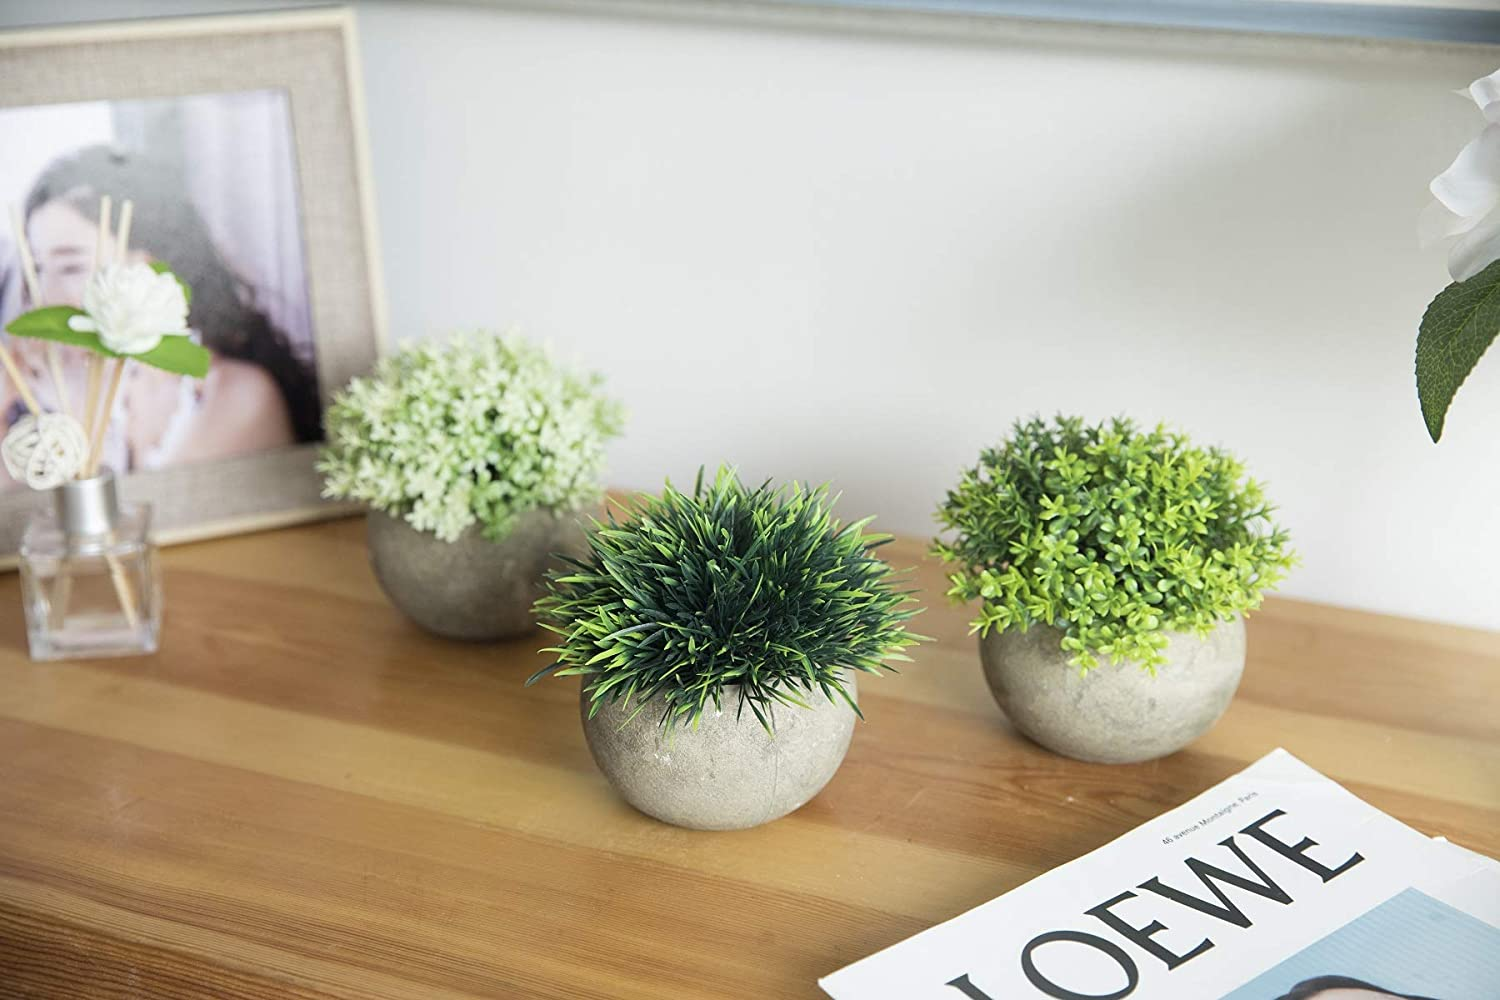 THE BLOOM TIMES 2 Pcs Fake Plants for Bathroom/Home Office Decor, Small Artificial Faux Greenery for House Decorations (Potted Plants) -